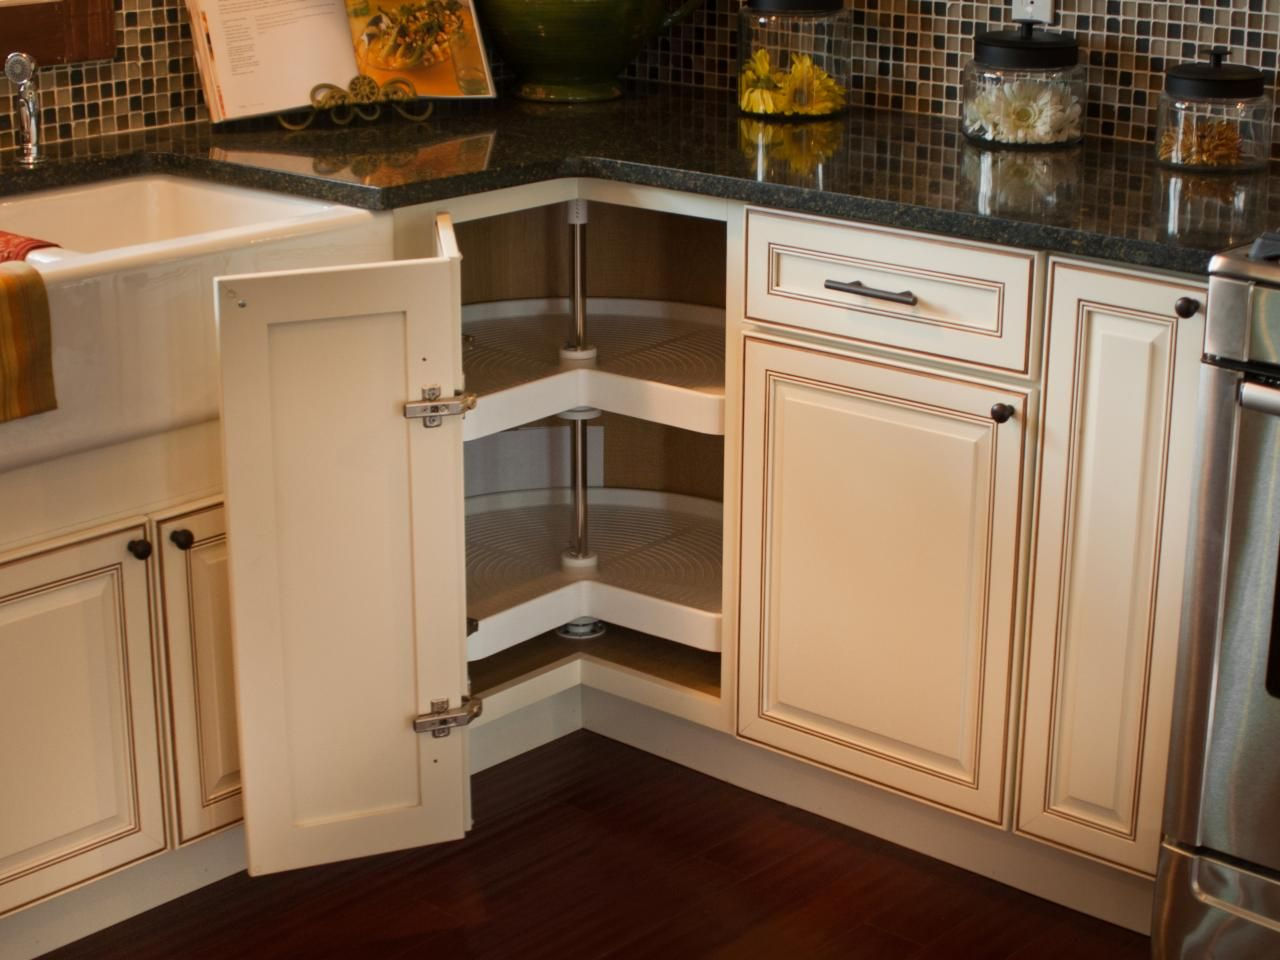 Corner Storage Cabinet For Kitchen A Corner Cabinet Door Opens To Reveal A Kidney Shaped Lazy